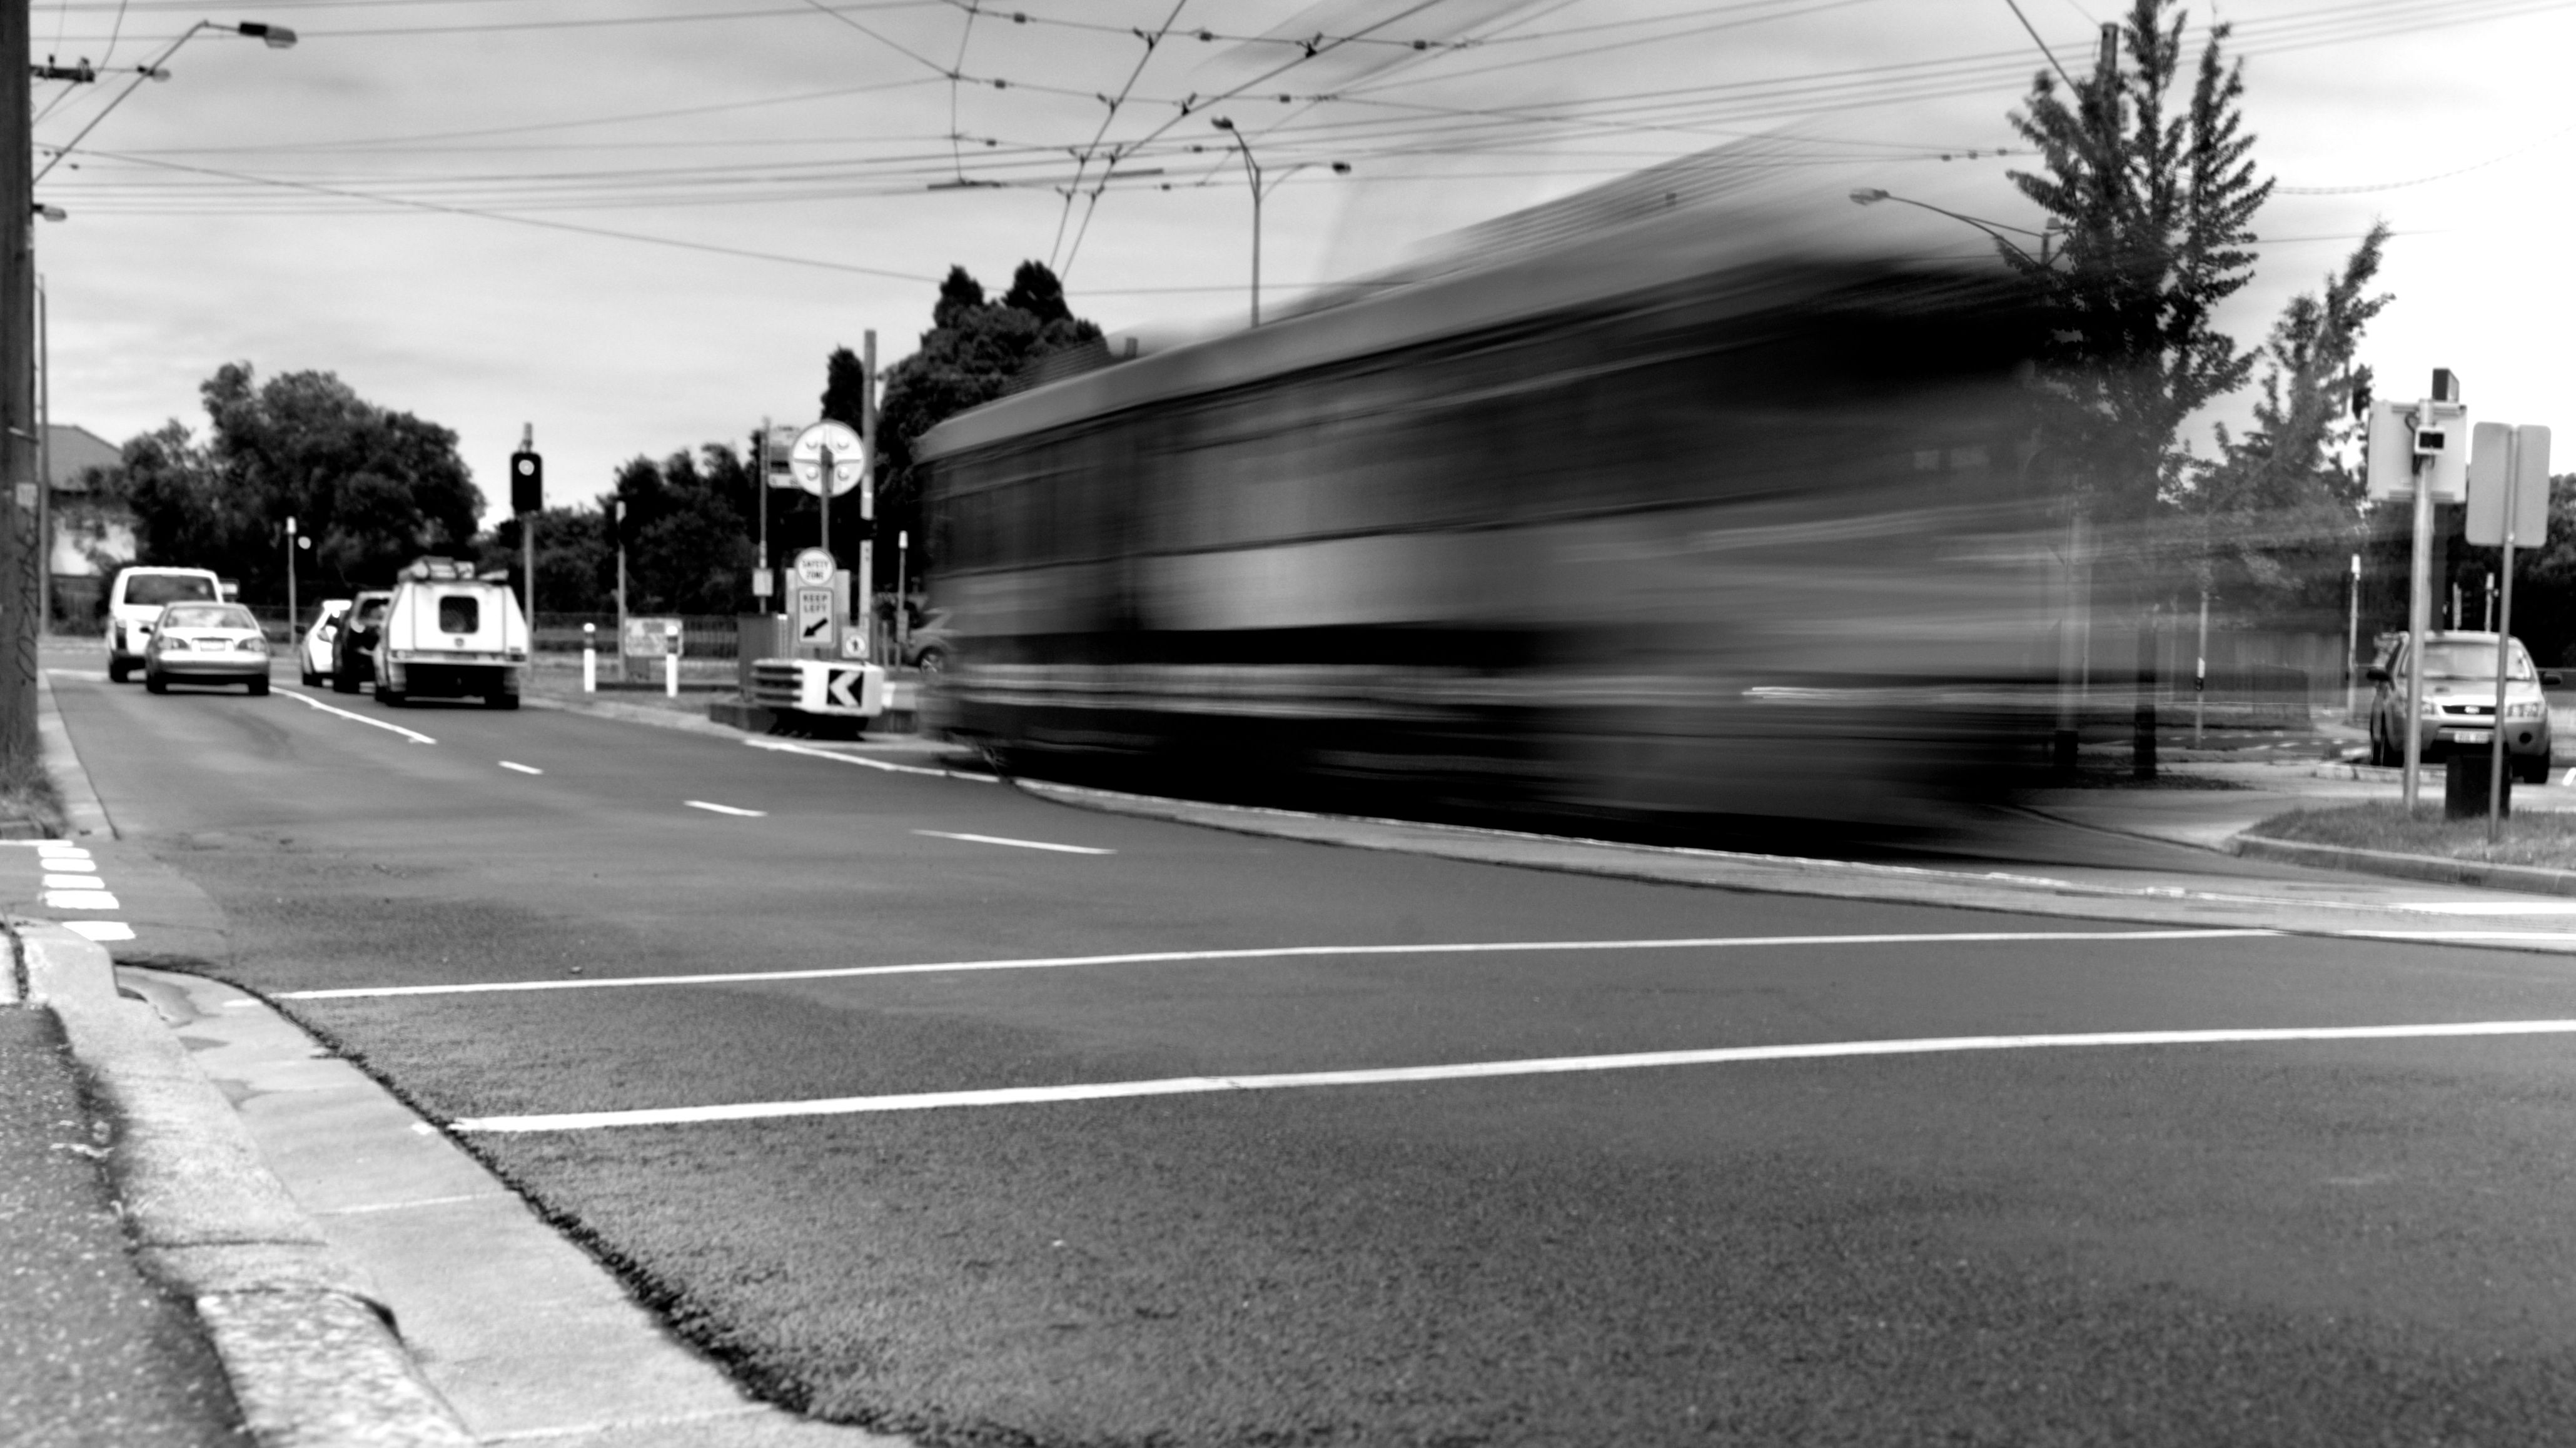 L1M2AS3. Tv Mode. BLURRED MOTION. 1.3 sec, f/8, 45mm, ISO 100. Taken outdoors, tripod, ND filter as it was midday. Long exposure. Focus is on tram. Leading lines above and below the tram - tram cable and road lines- following tram's movement direction.